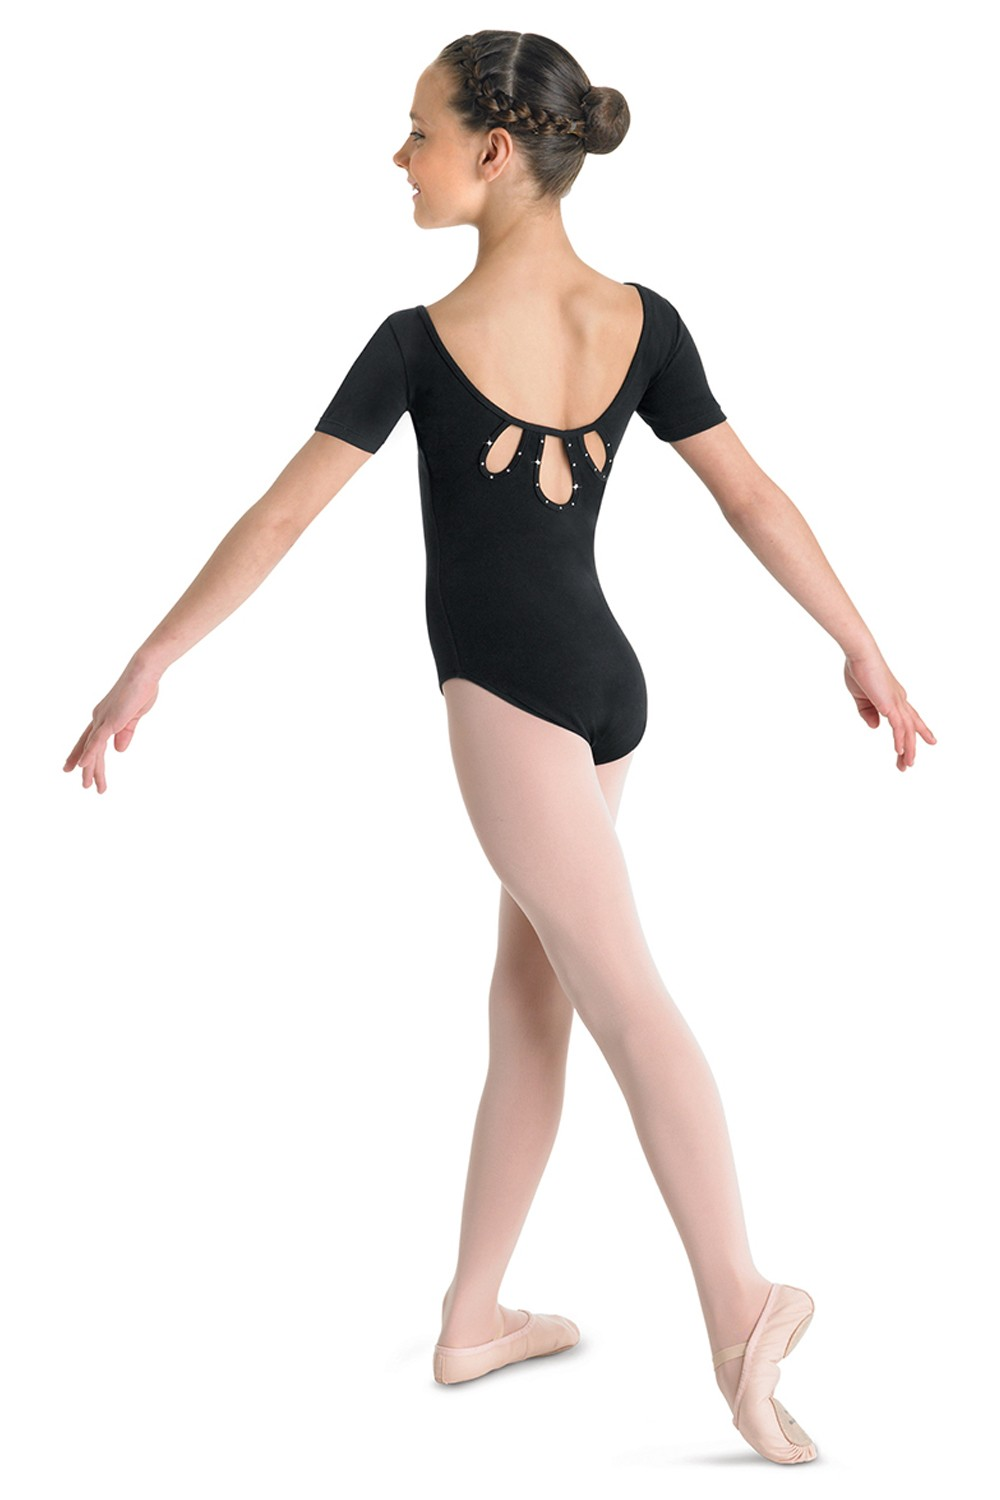 Porte Children's Dance Leotards